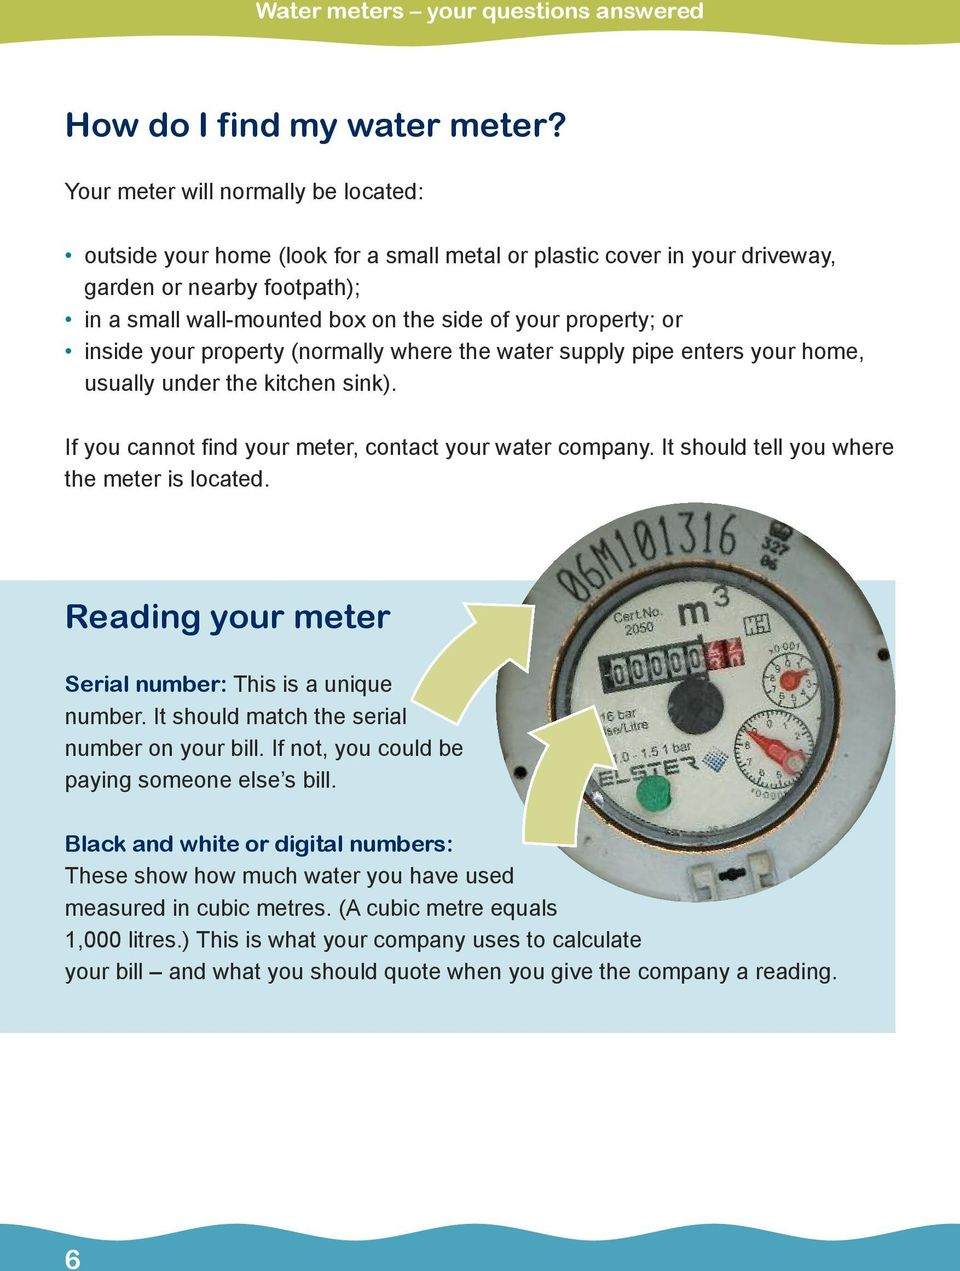 or inside your property (normally where the water supply pipe enters your home, usually under the kitchen sink). If you cannot find your meter, contact your water company.